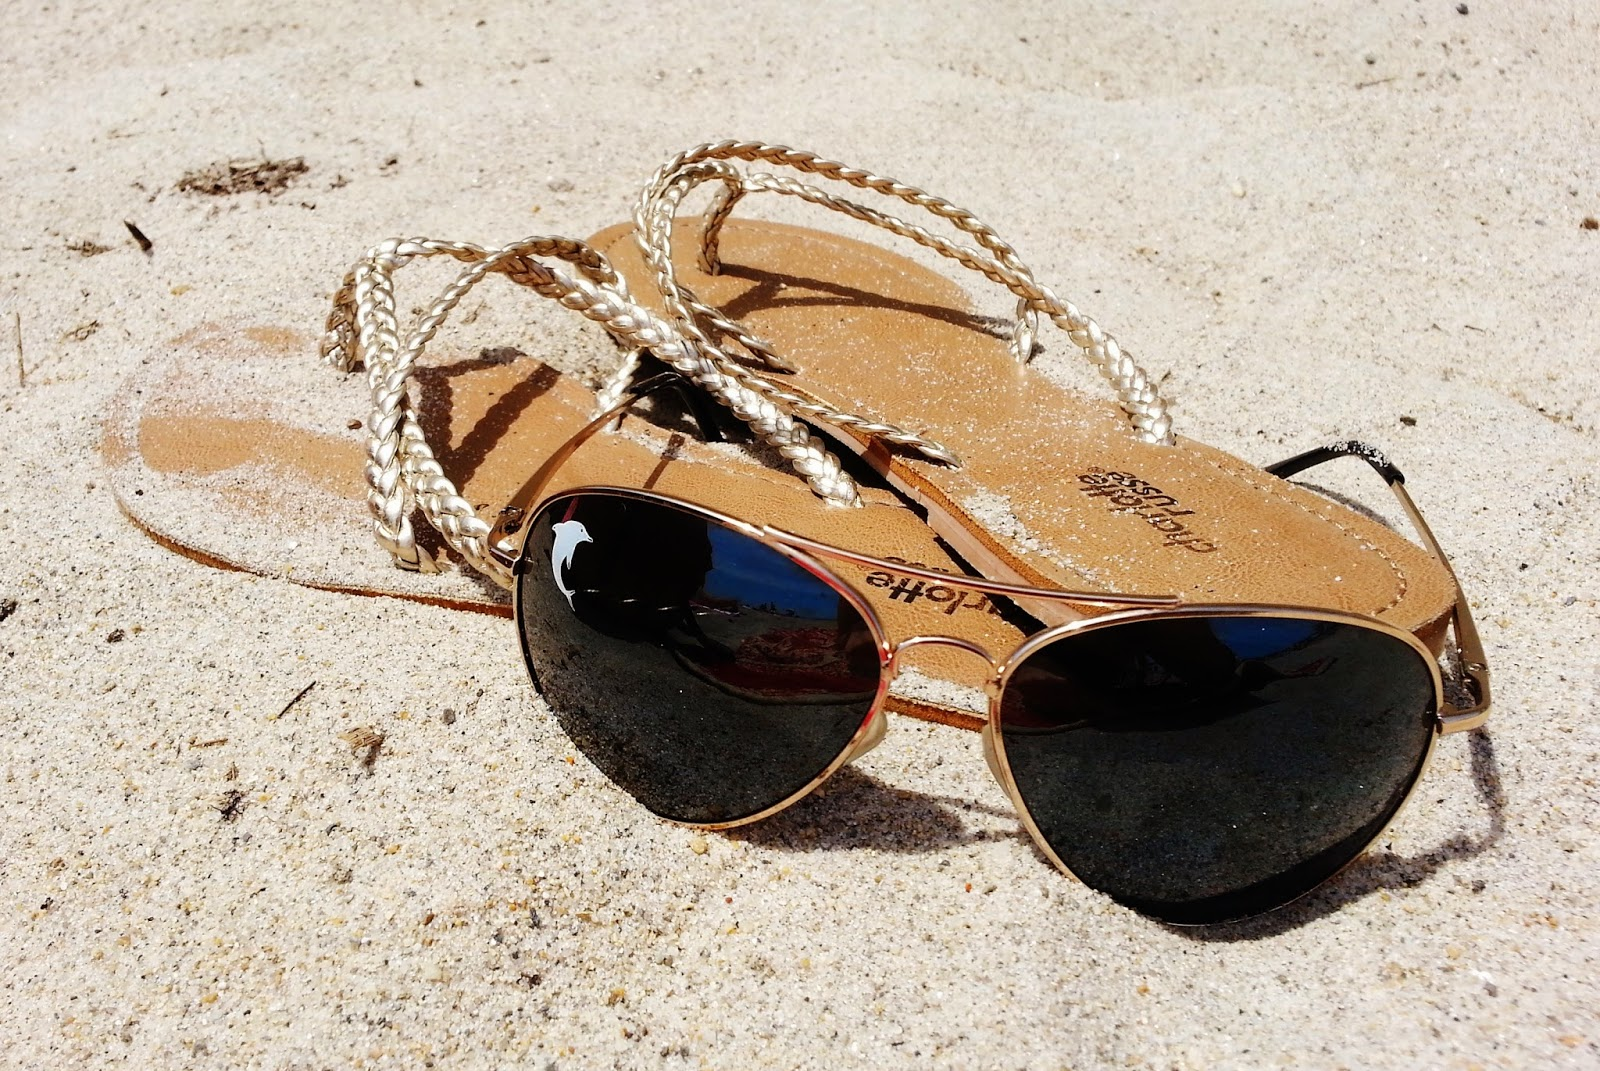 beach sandals sunglasses sand gold flip flops